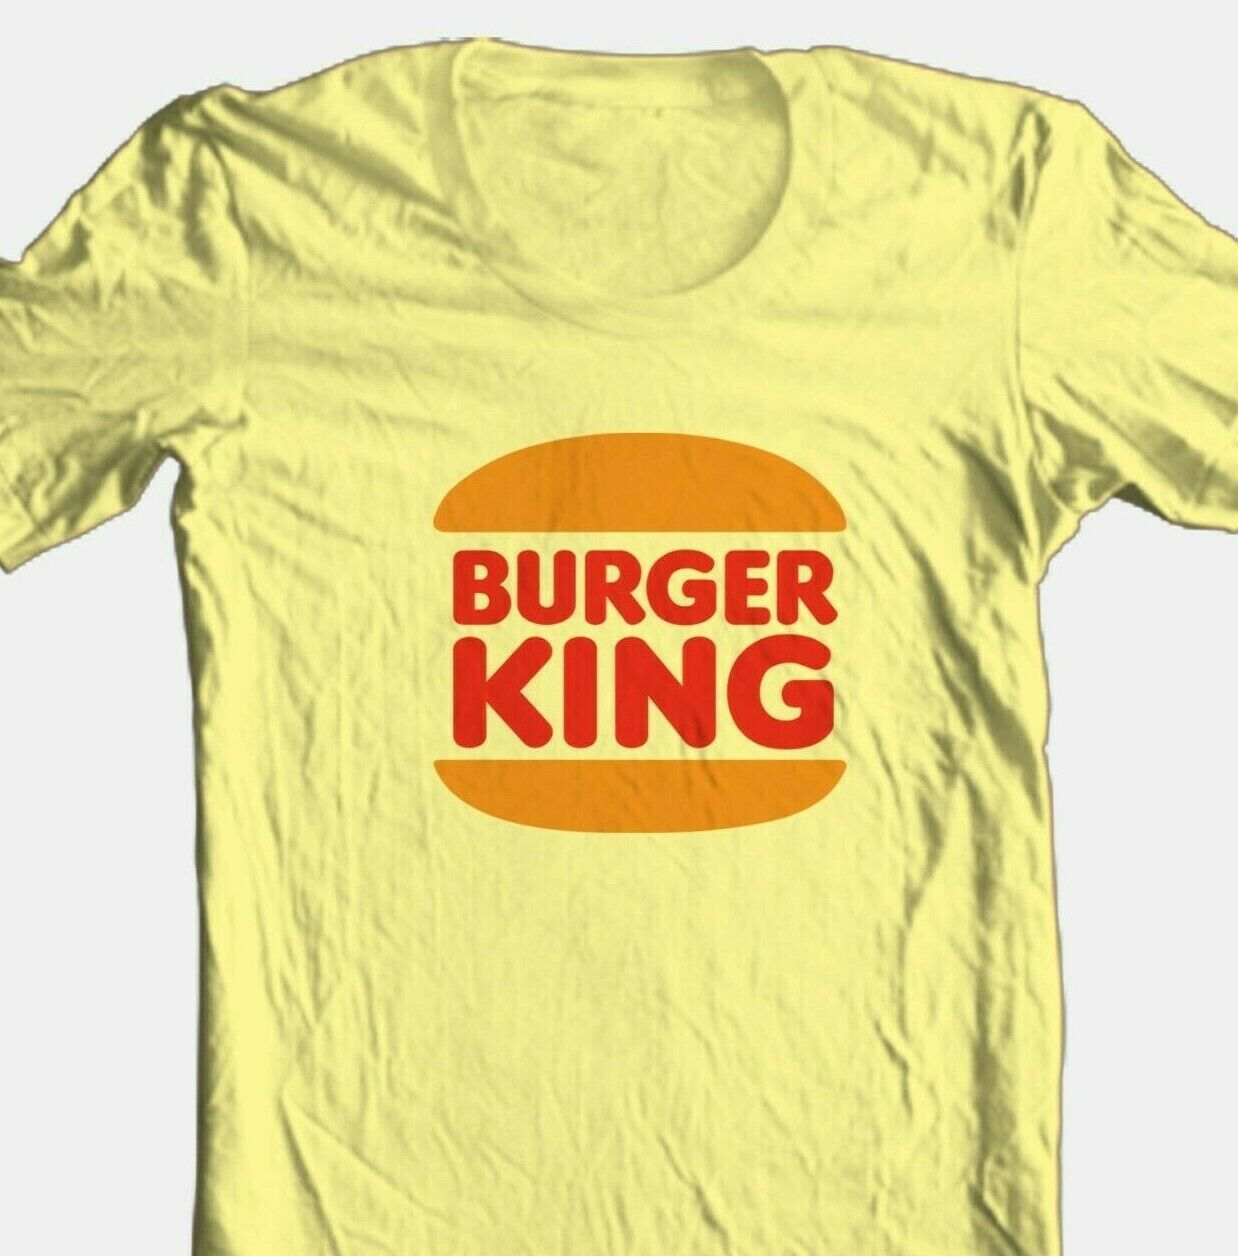 Burger King T-shirt Free Shipping retro 80s fast food 100% cotton graphic tee